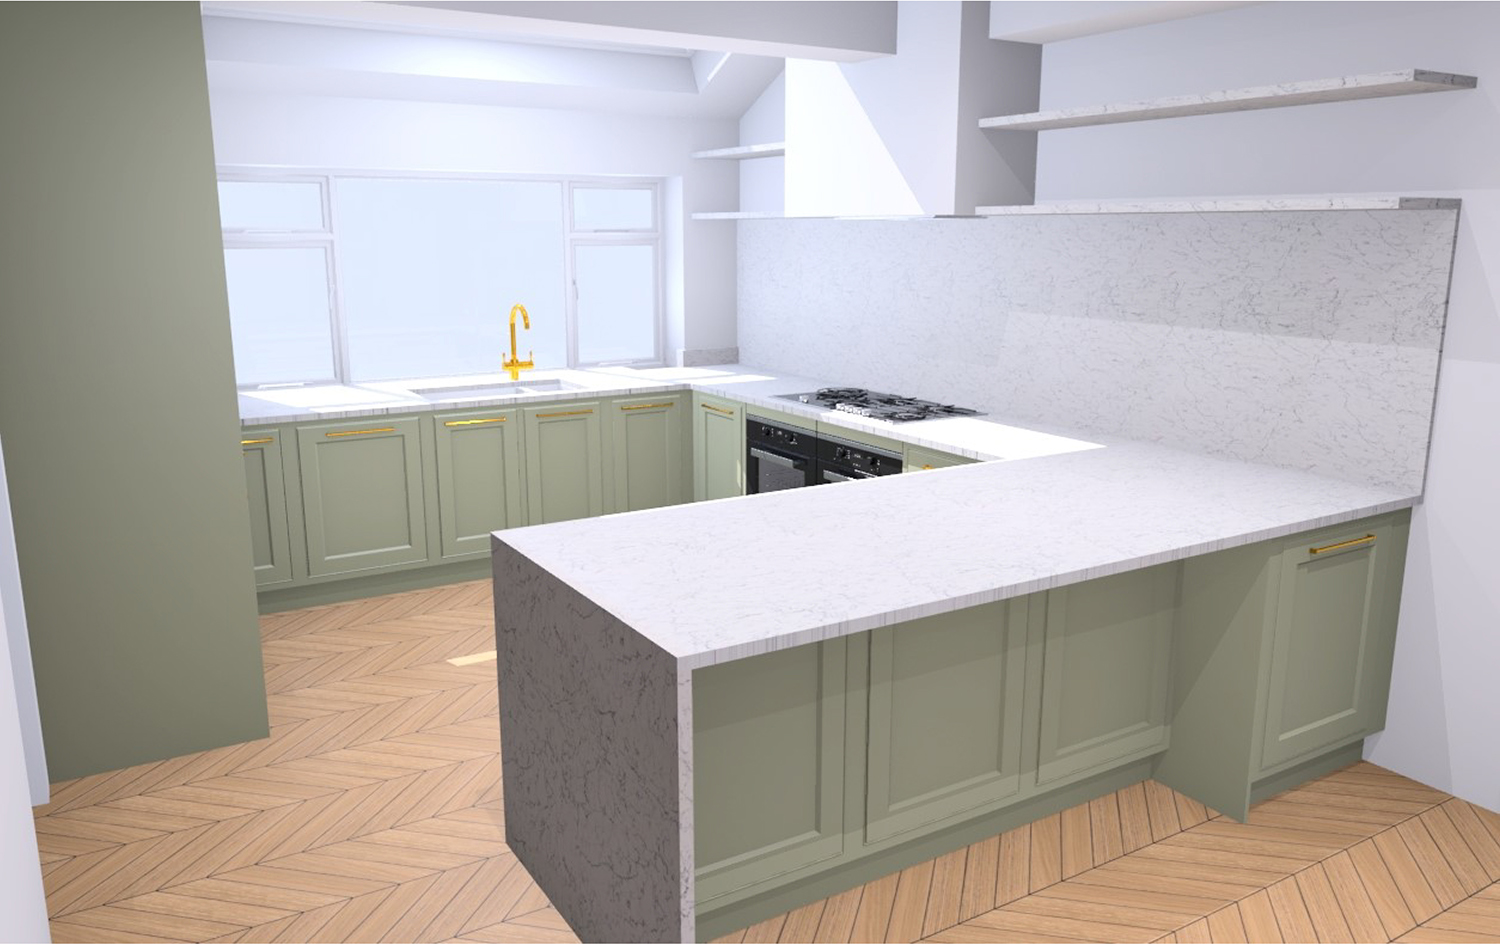 Designing My Dream Kitchen With John Lewis Of Hungerford Swoon